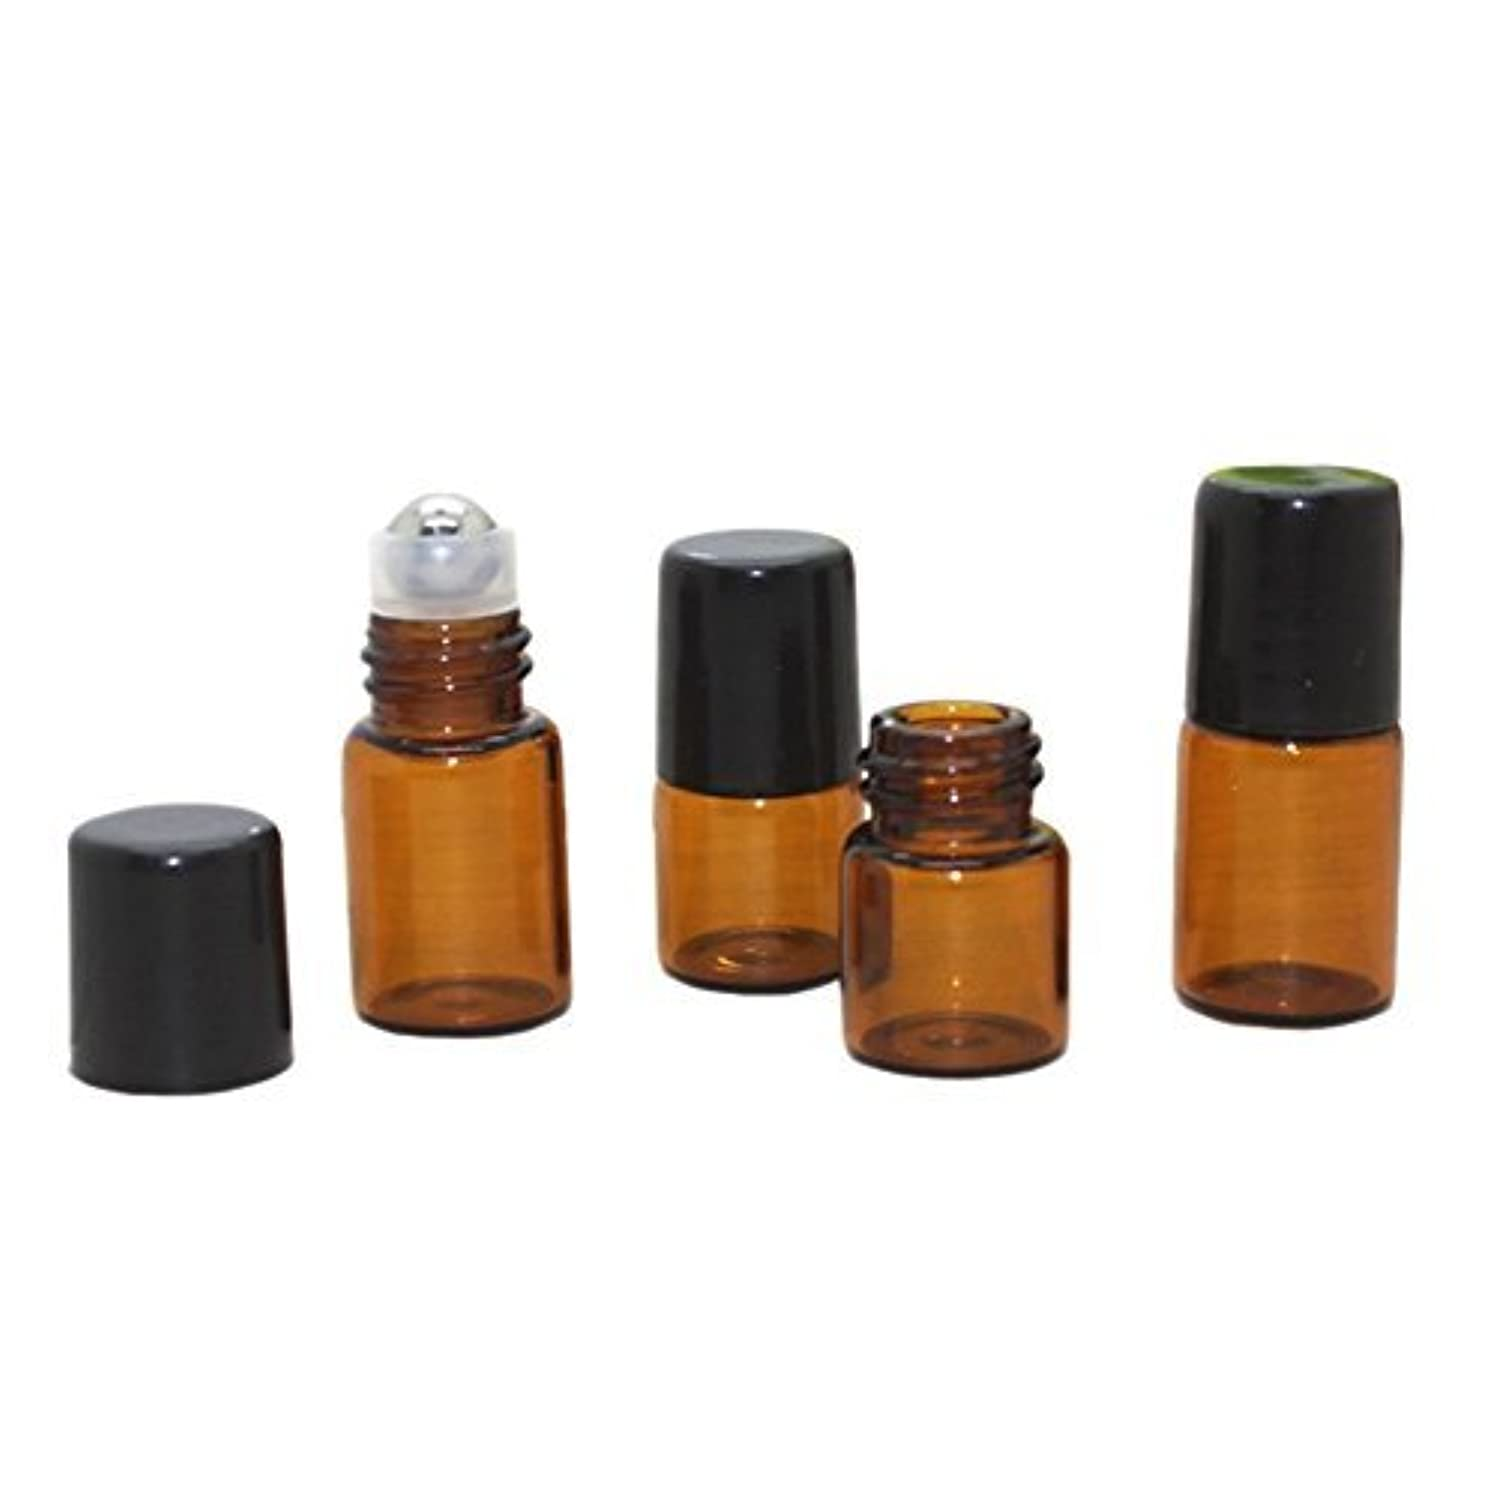 レギュラー調和のとれたわずらわしいHugeStore 25 Pcs Mini Tiny Refillable Empty Essential Oil Glass Roller Bottles Aromatherapy Liquid Amber Glass...